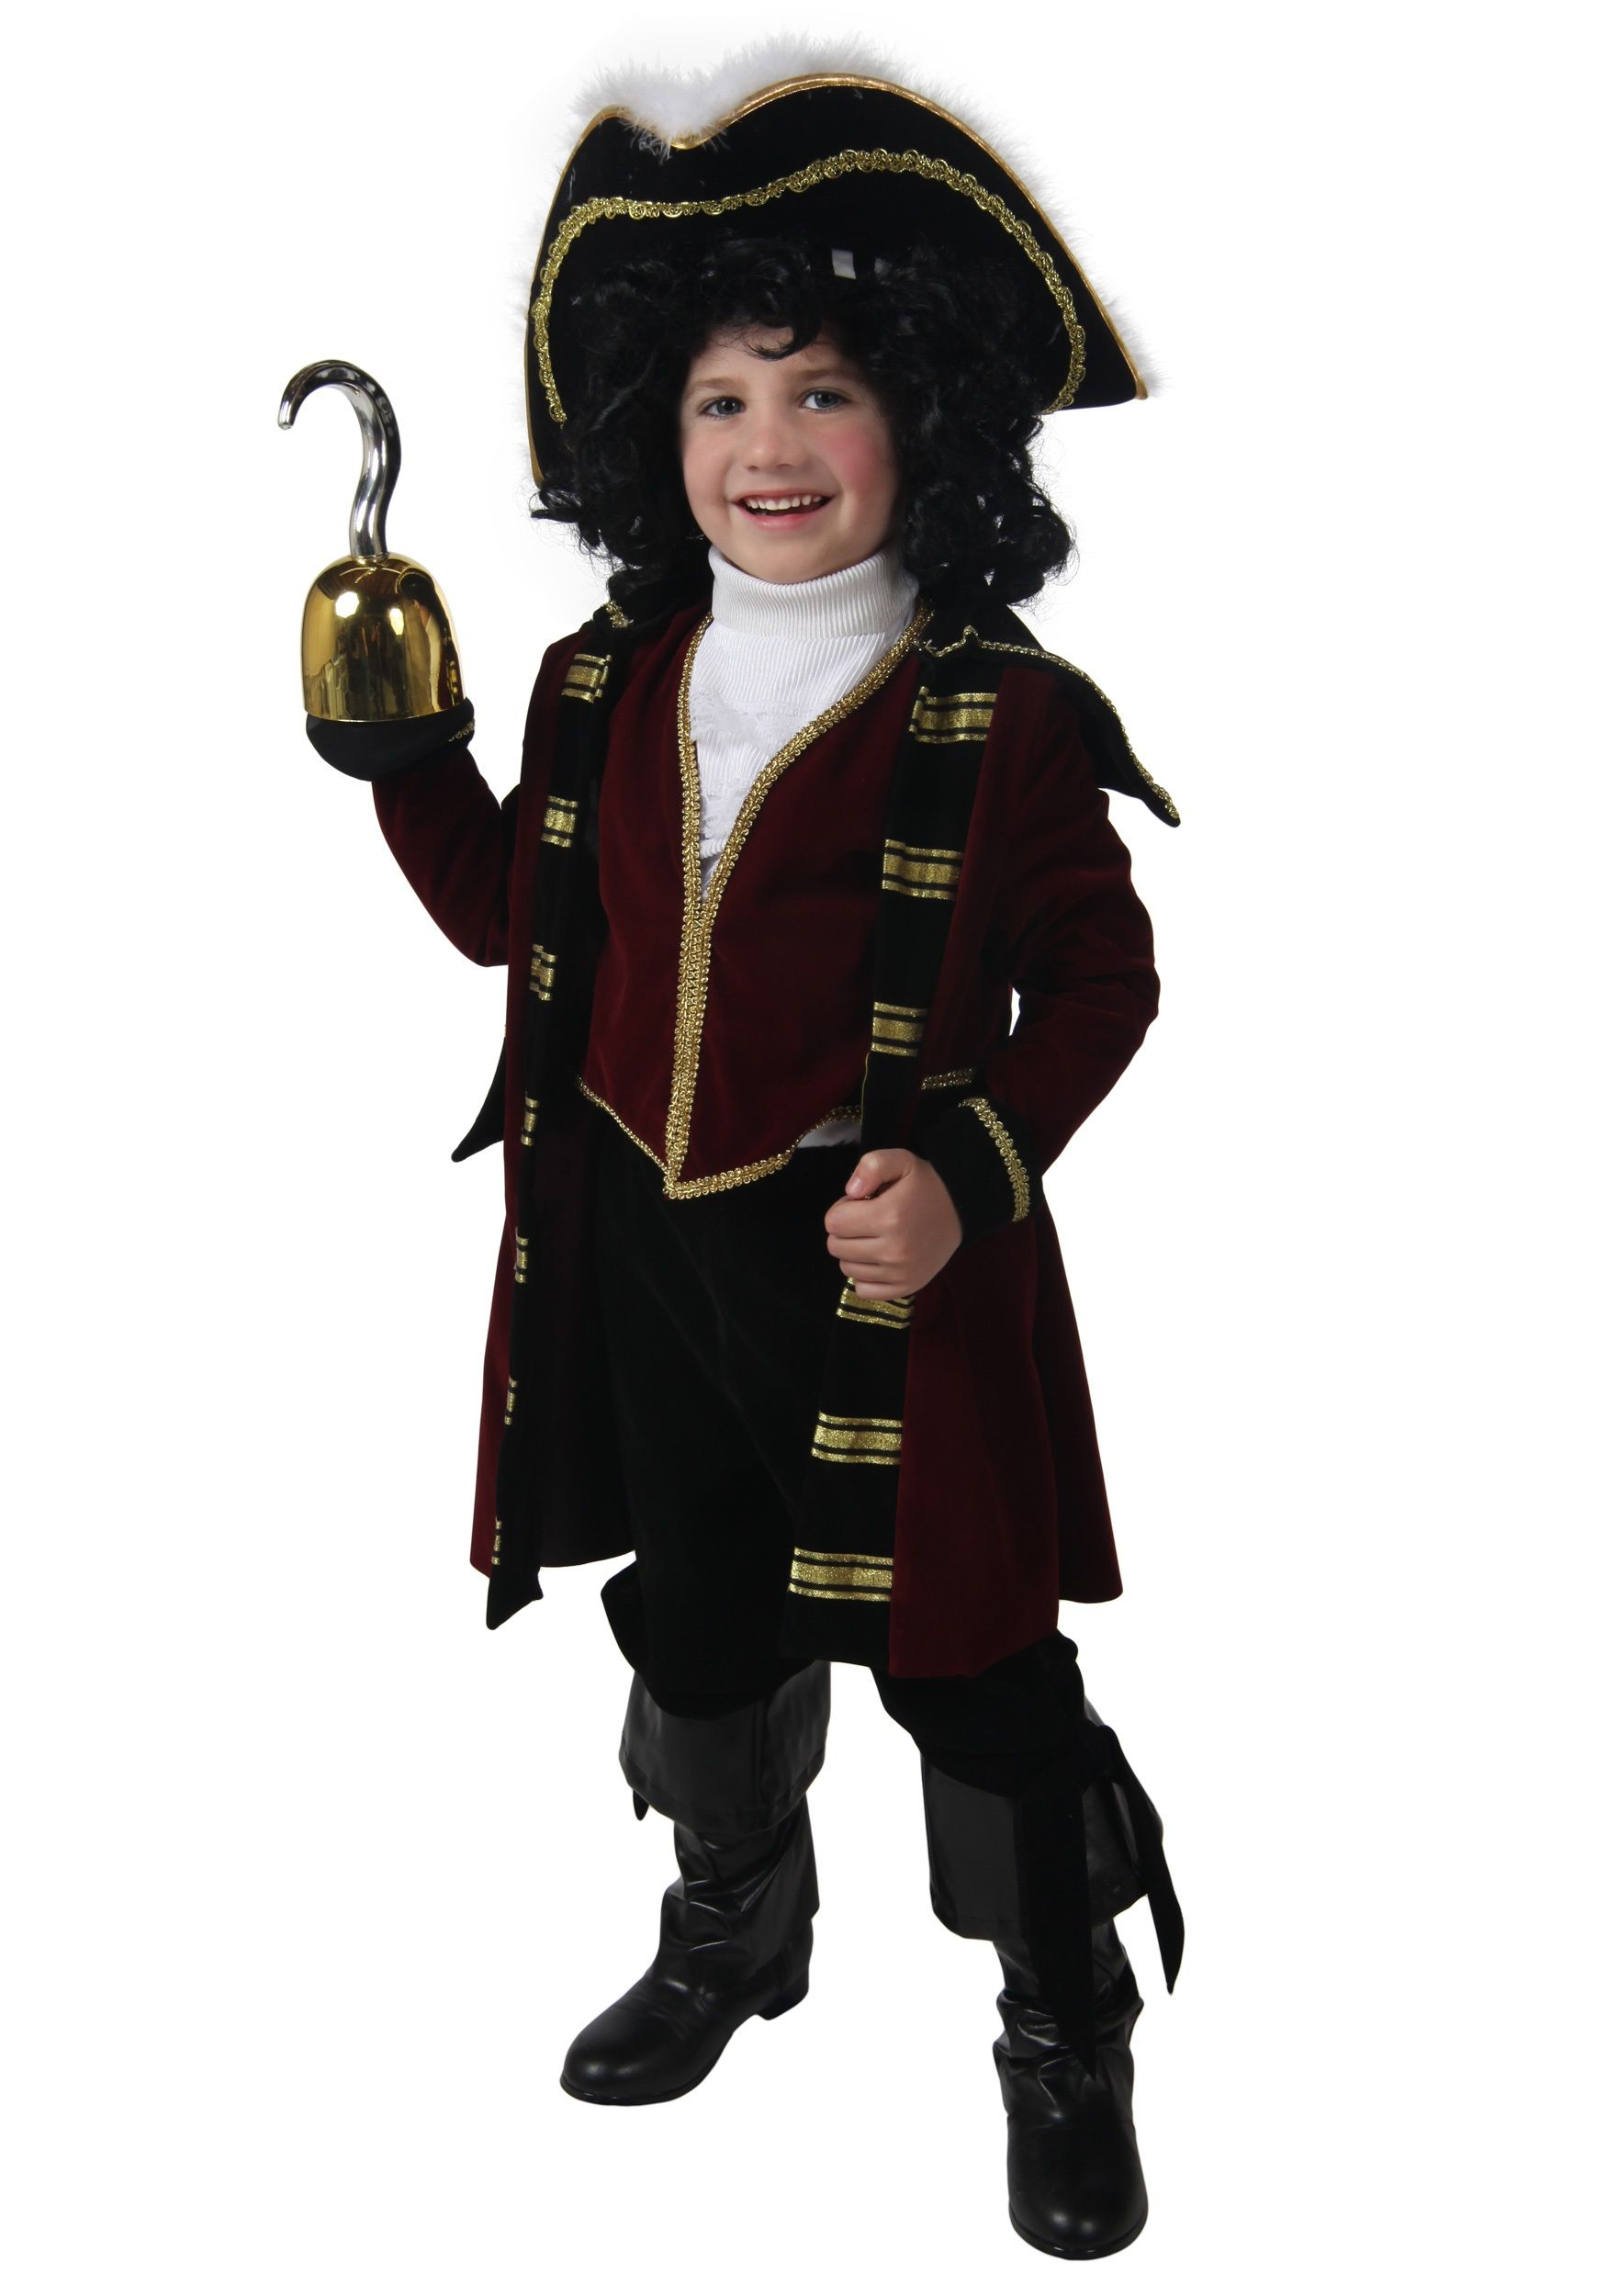 HAT All Sizes NEW Pirate NEW Disney Store Captain Hook COSTUME Suit